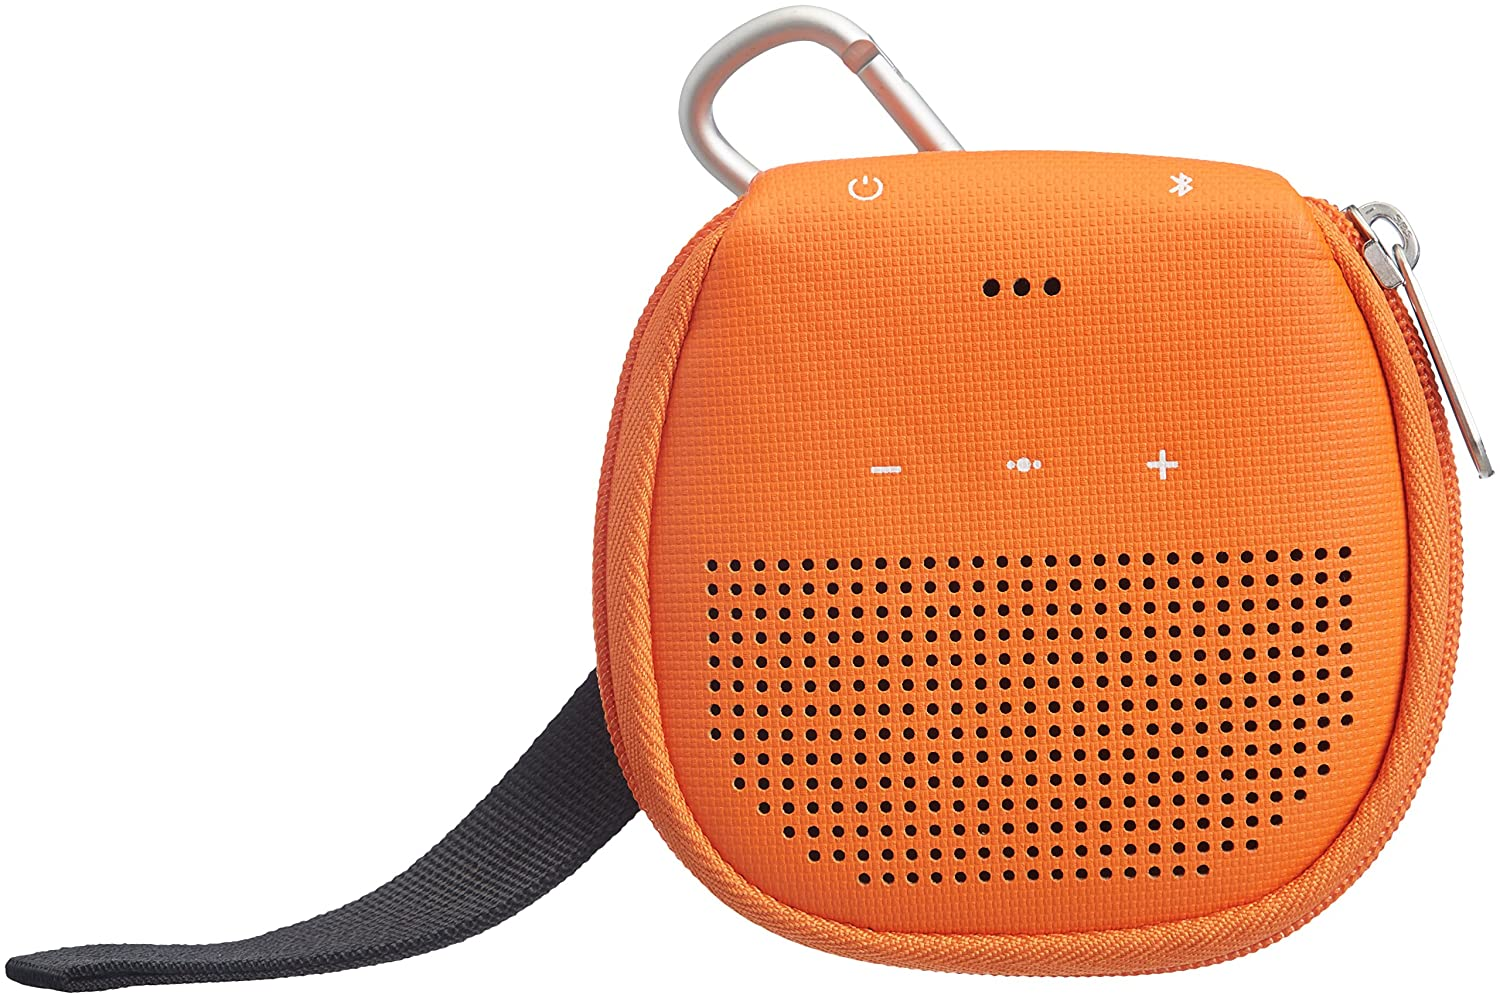 Basics Case with Kickstand for Bose SoundLink Micro Bluetooth Speaker - Black ZH1706146R4